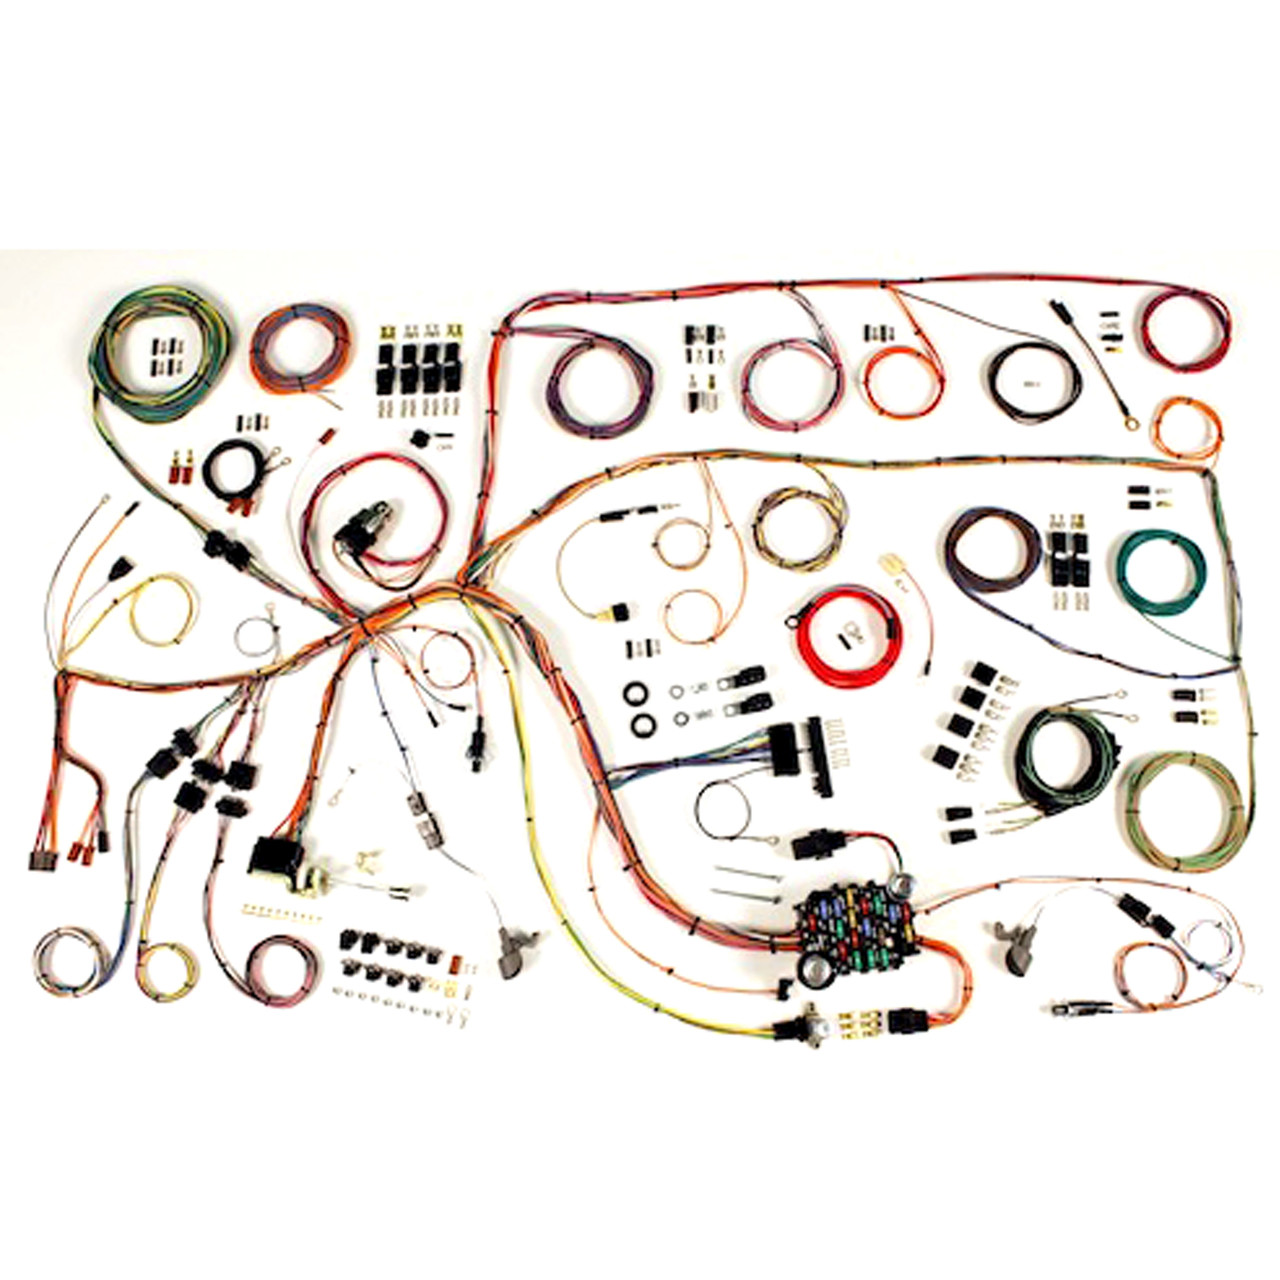 1964 Ford Falcon Wiring Harness - Wiring Diagram M2 Falcon Wiring Diagram on